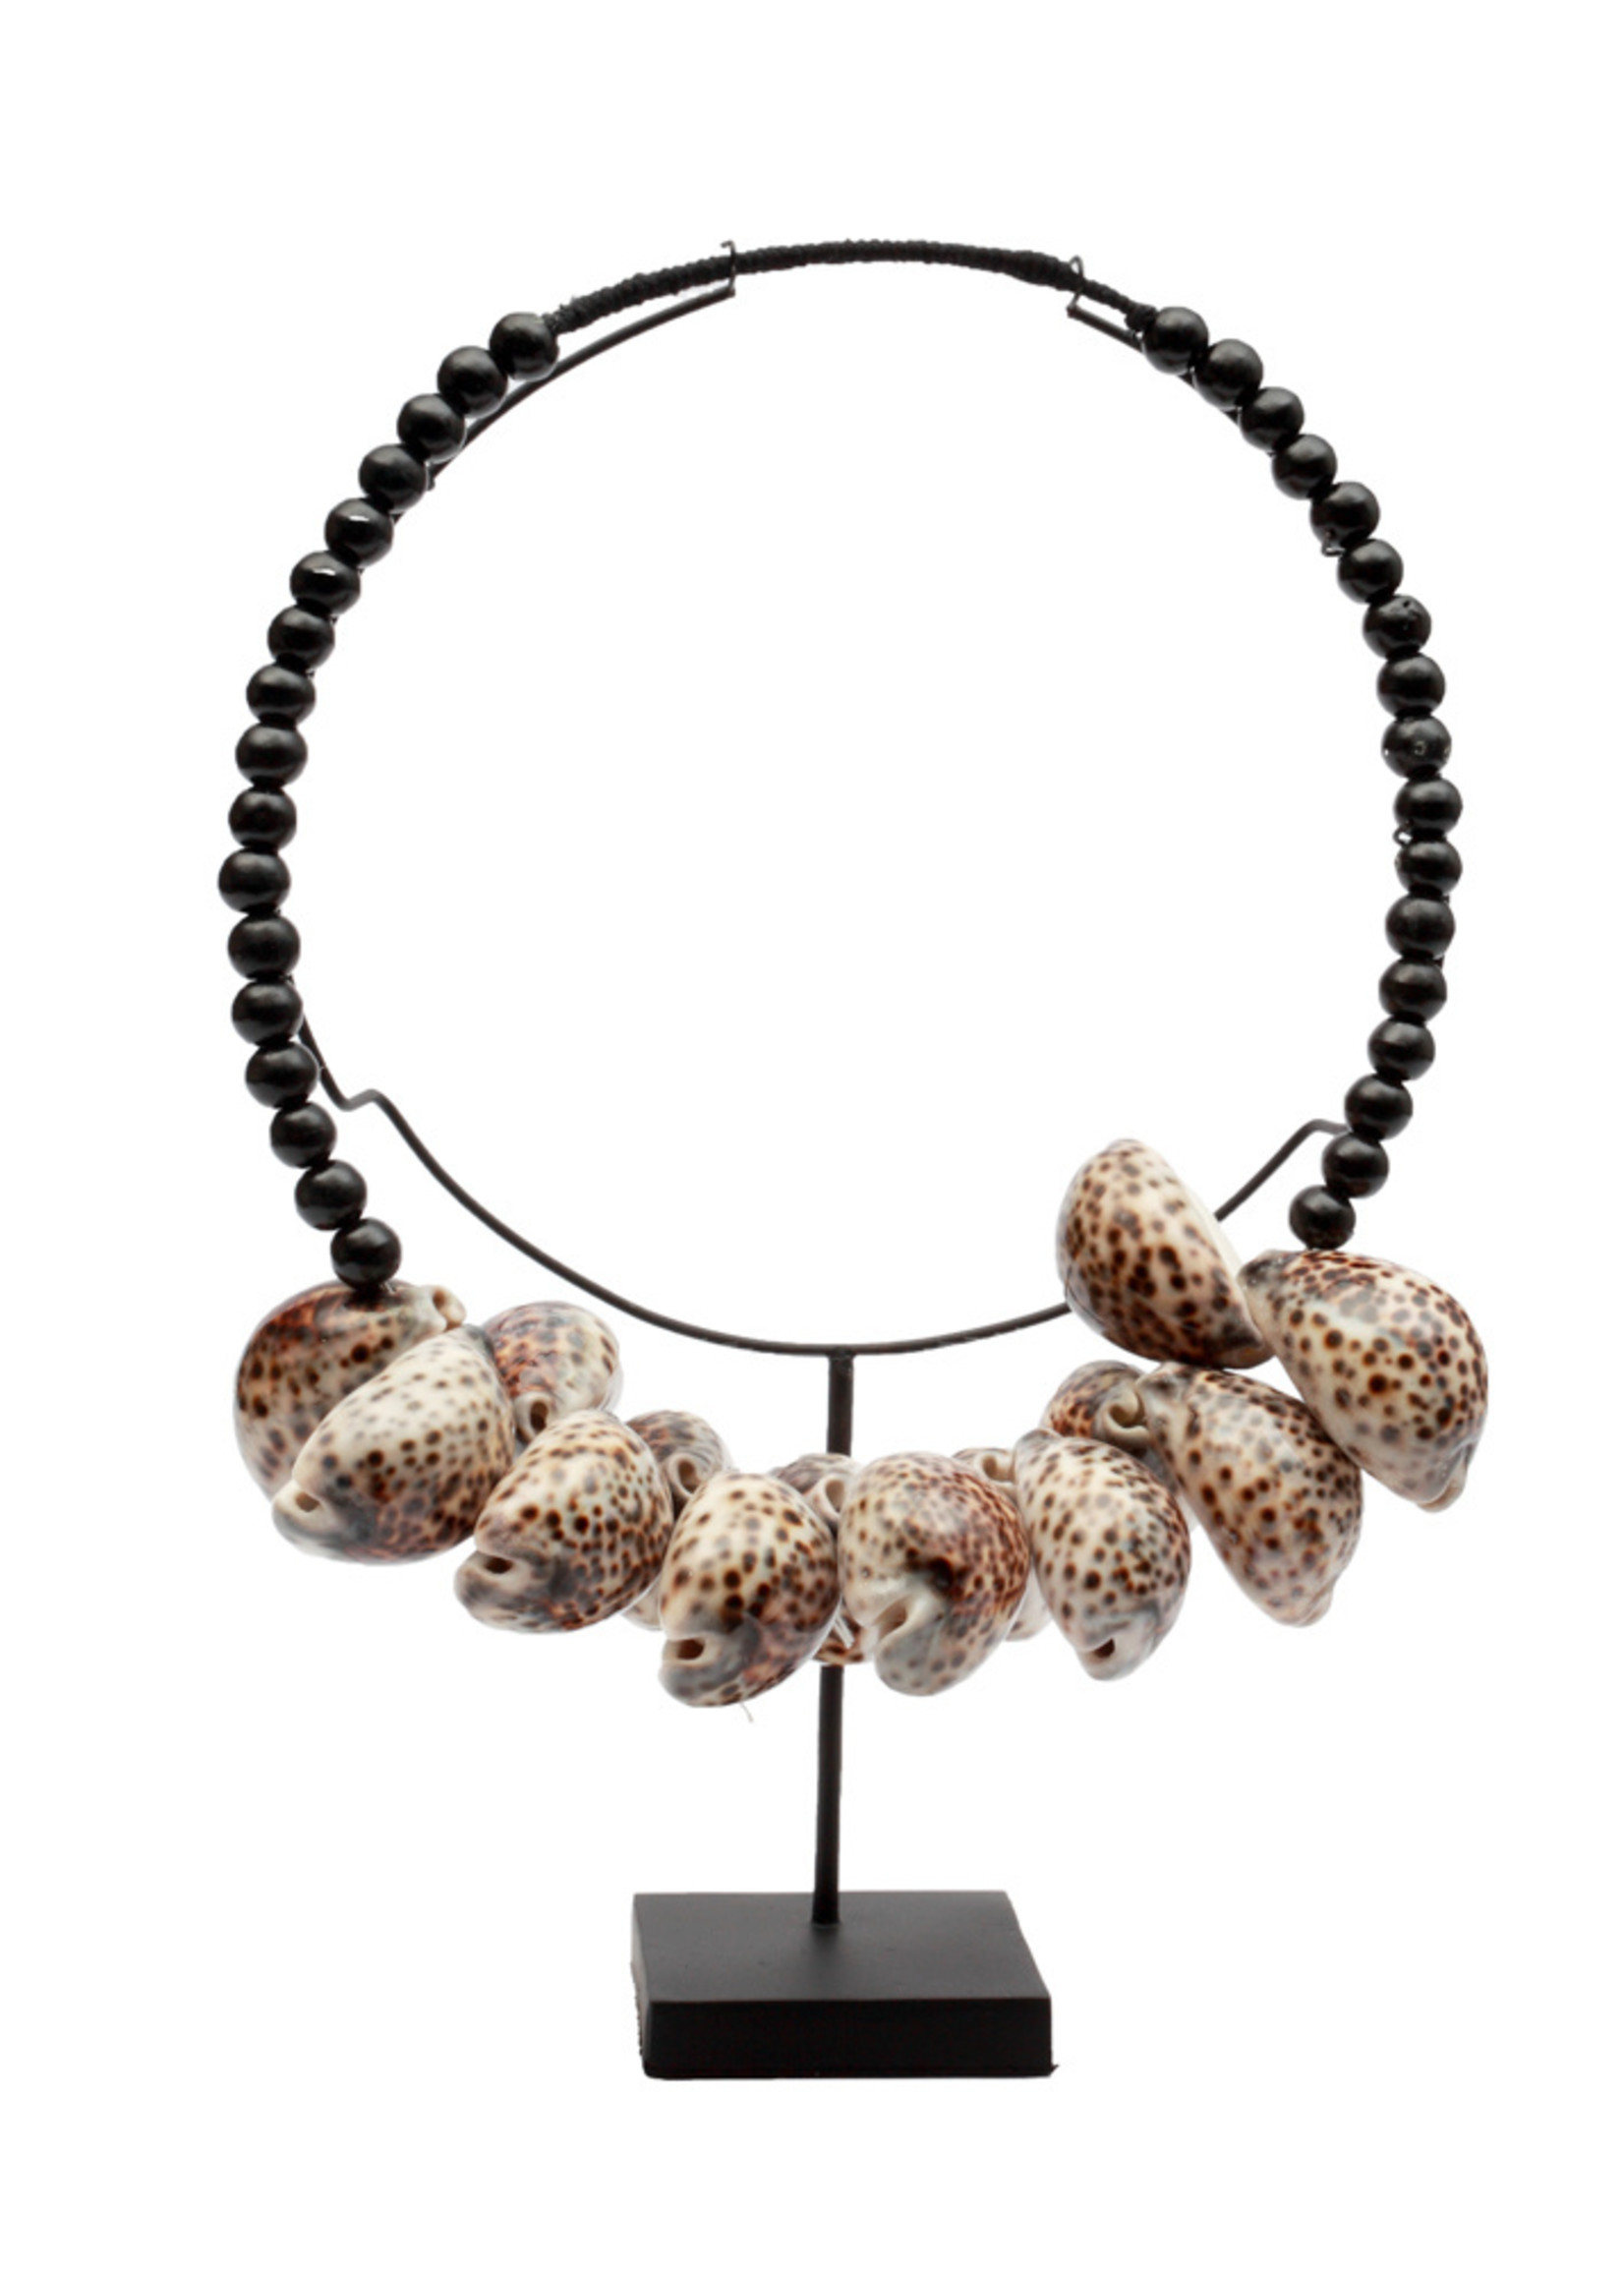 The Tiger Cowrie Necklace Black Wood on Stand